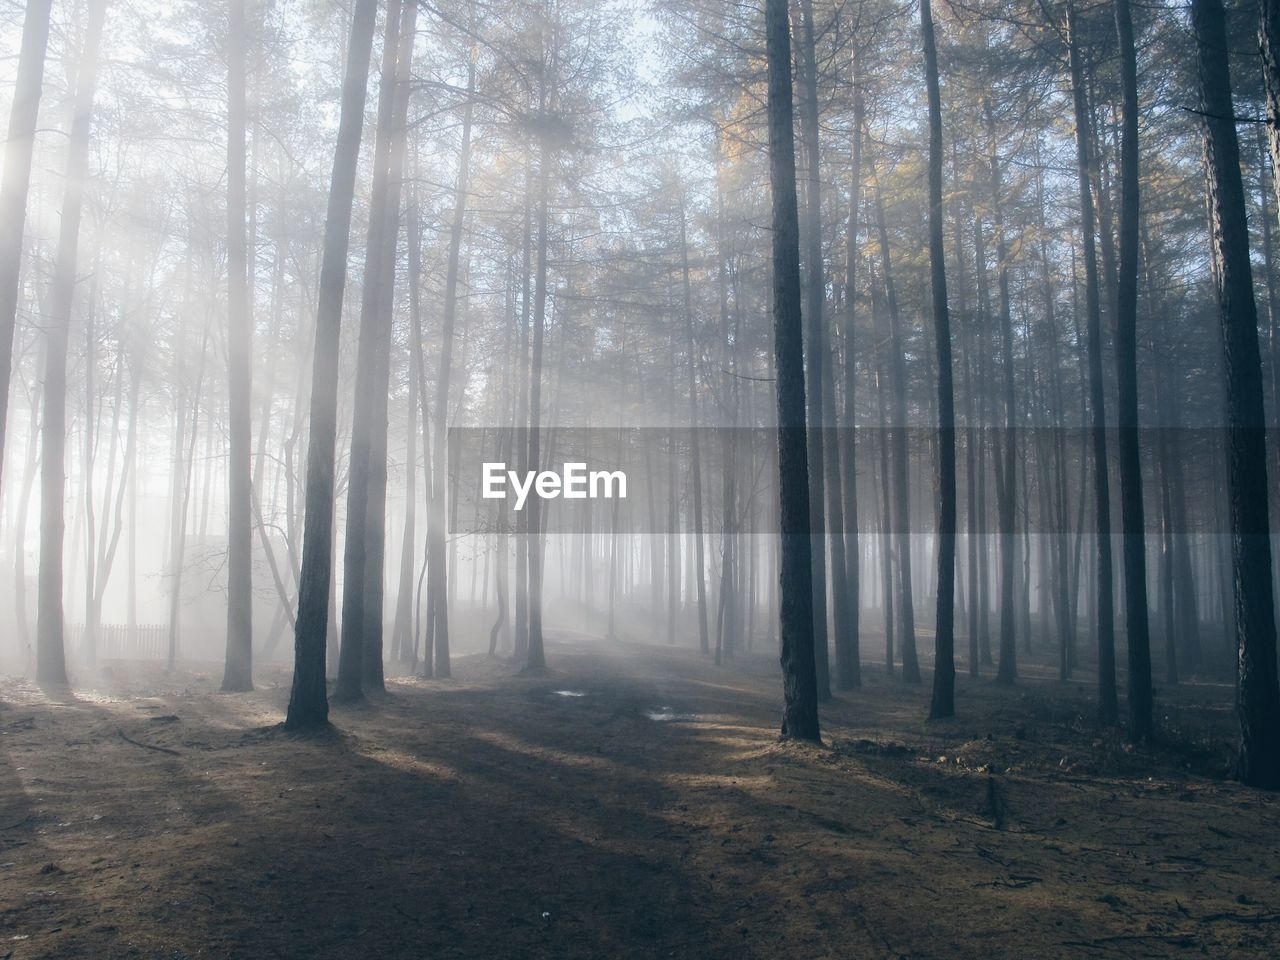 tree, forest, plant, land, tranquility, fog, woodland, beauty in nature, nature, no people, tranquil scene, trunk, tree trunk, day, non-urban scene, scenics - nature, outdoors, environment, landscape, hazy